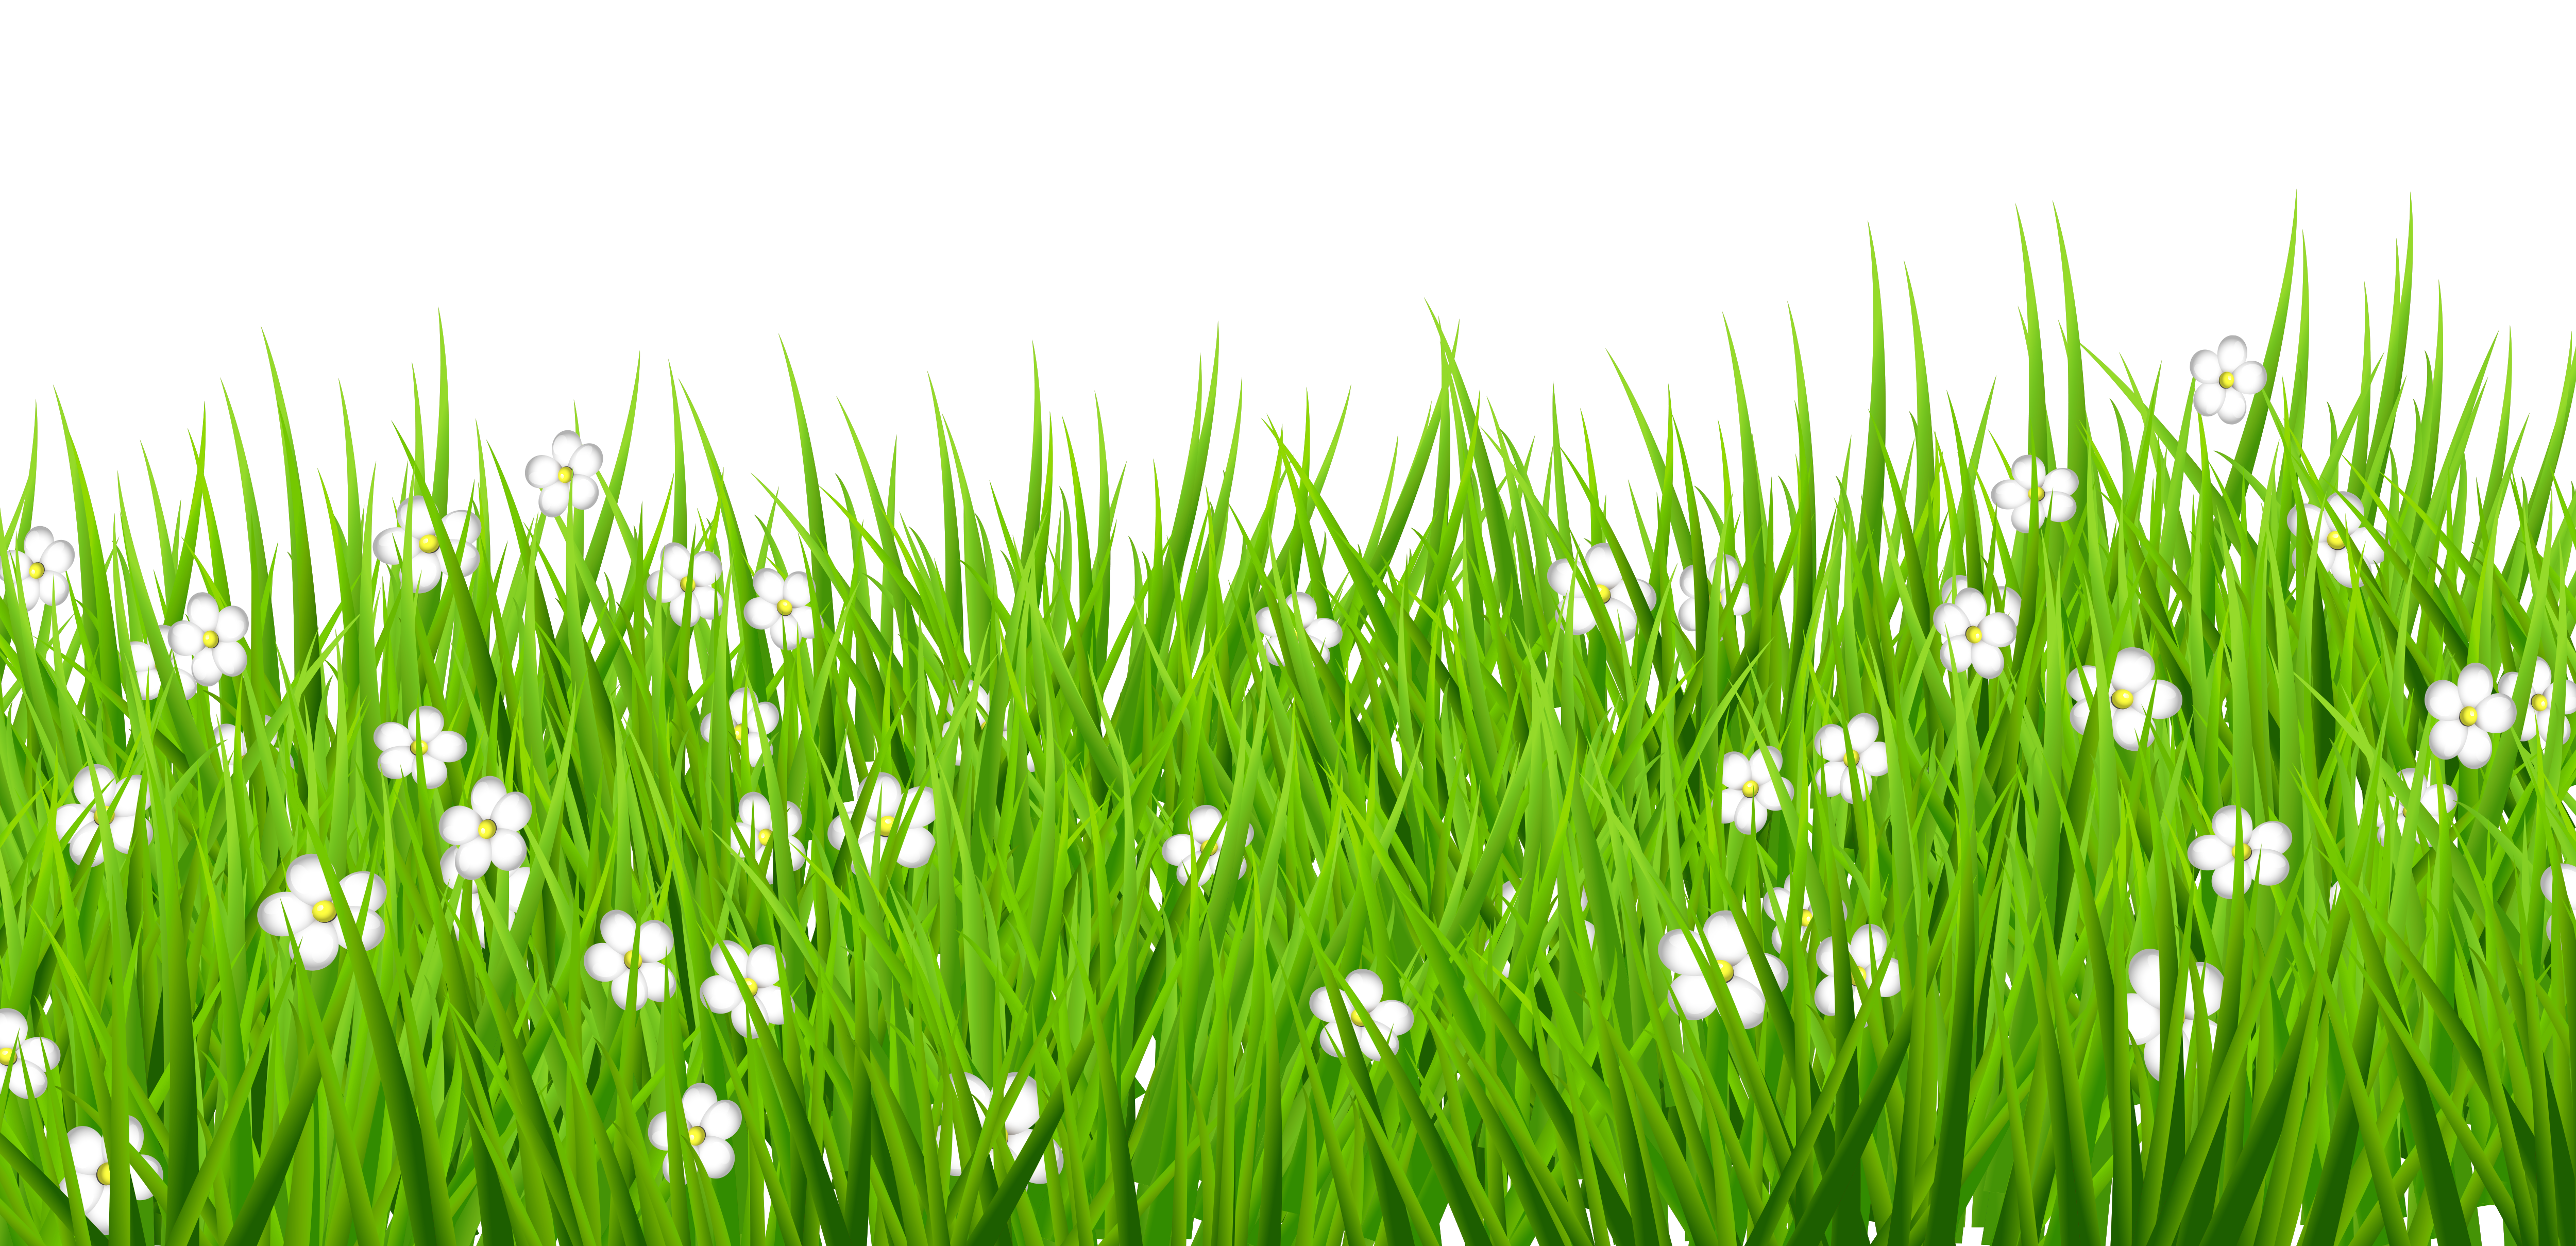 Free Transparent Grass Clipart, Download Free Clip Art, Free.